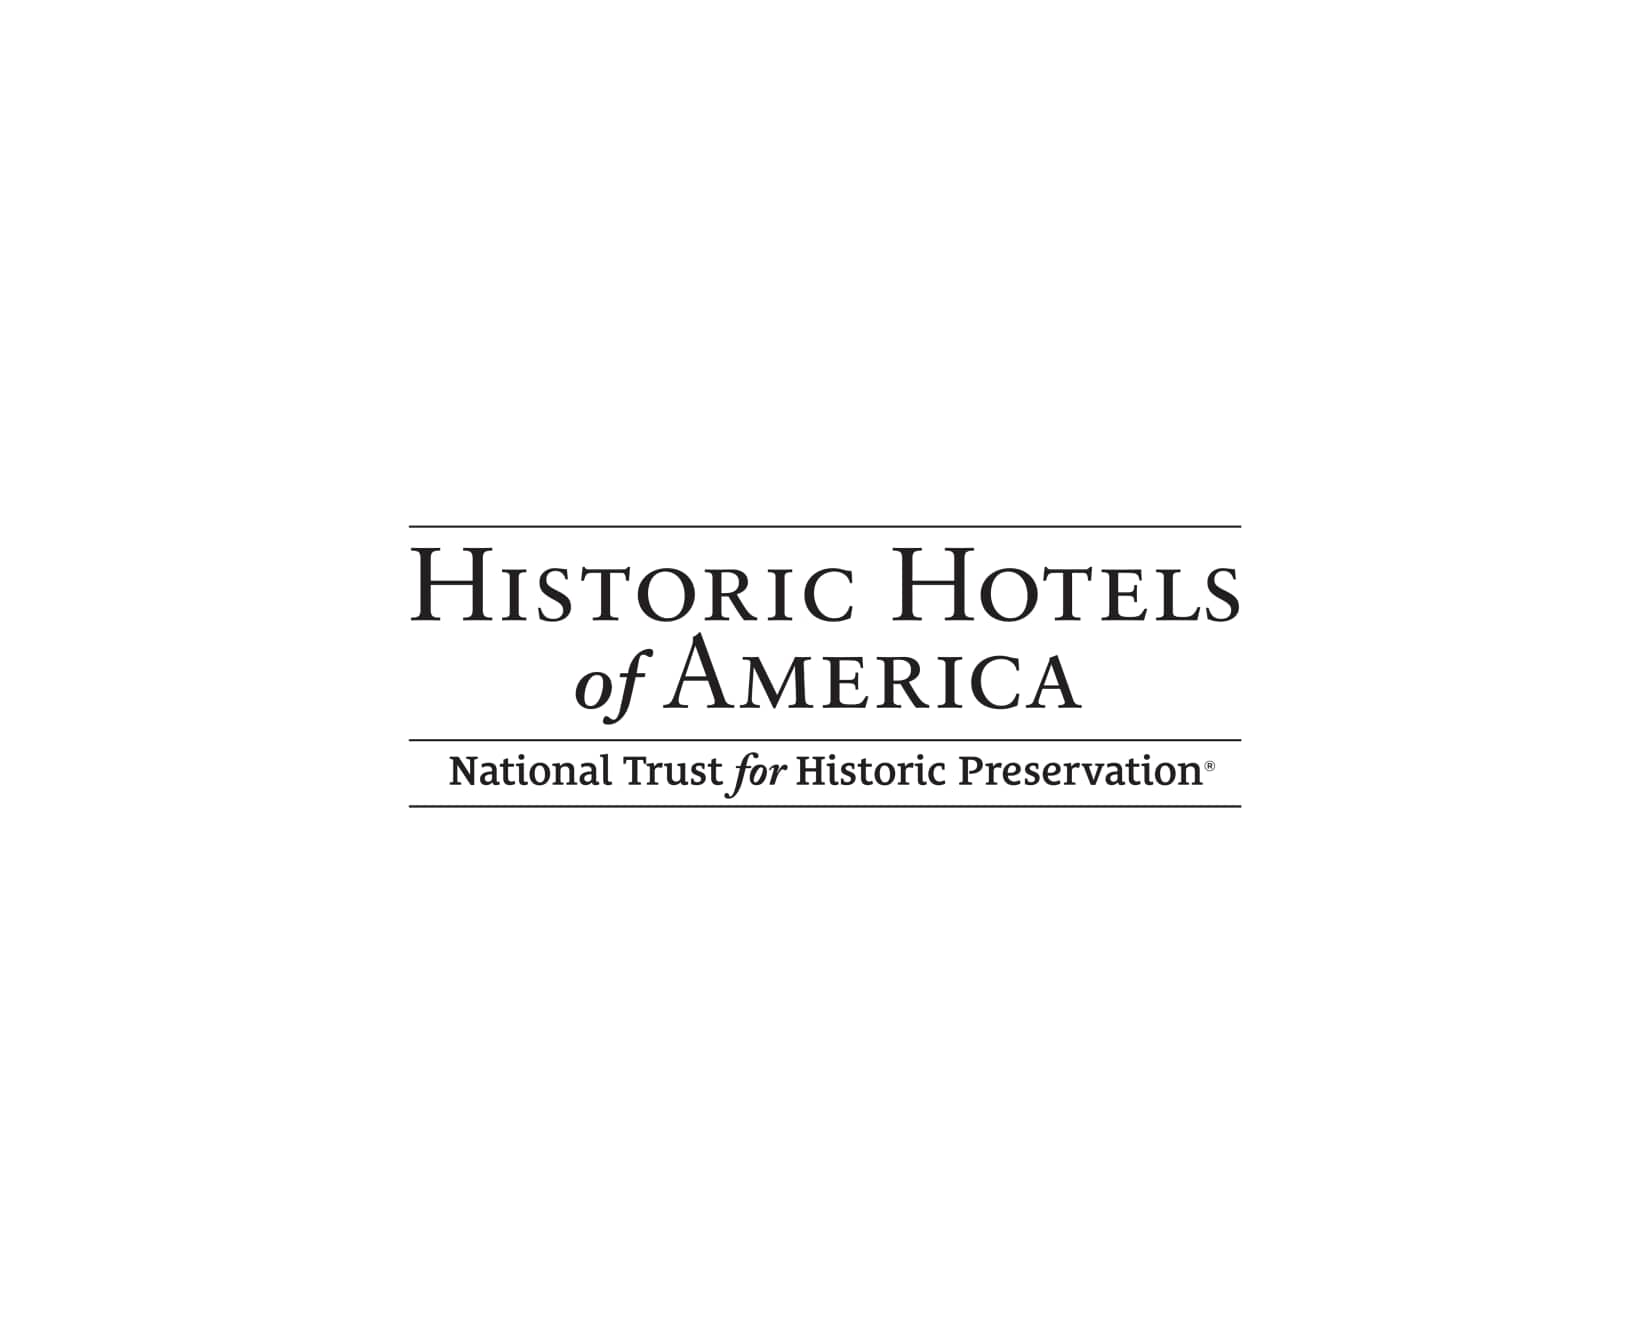 http://res.cloudinary.com/colonialwilliamsburg/image/upload/c_fill,w_950,q_auto:eco,g_auto:faces/v1484269740/hotels/historic-hotels-of-america-logo.jpg